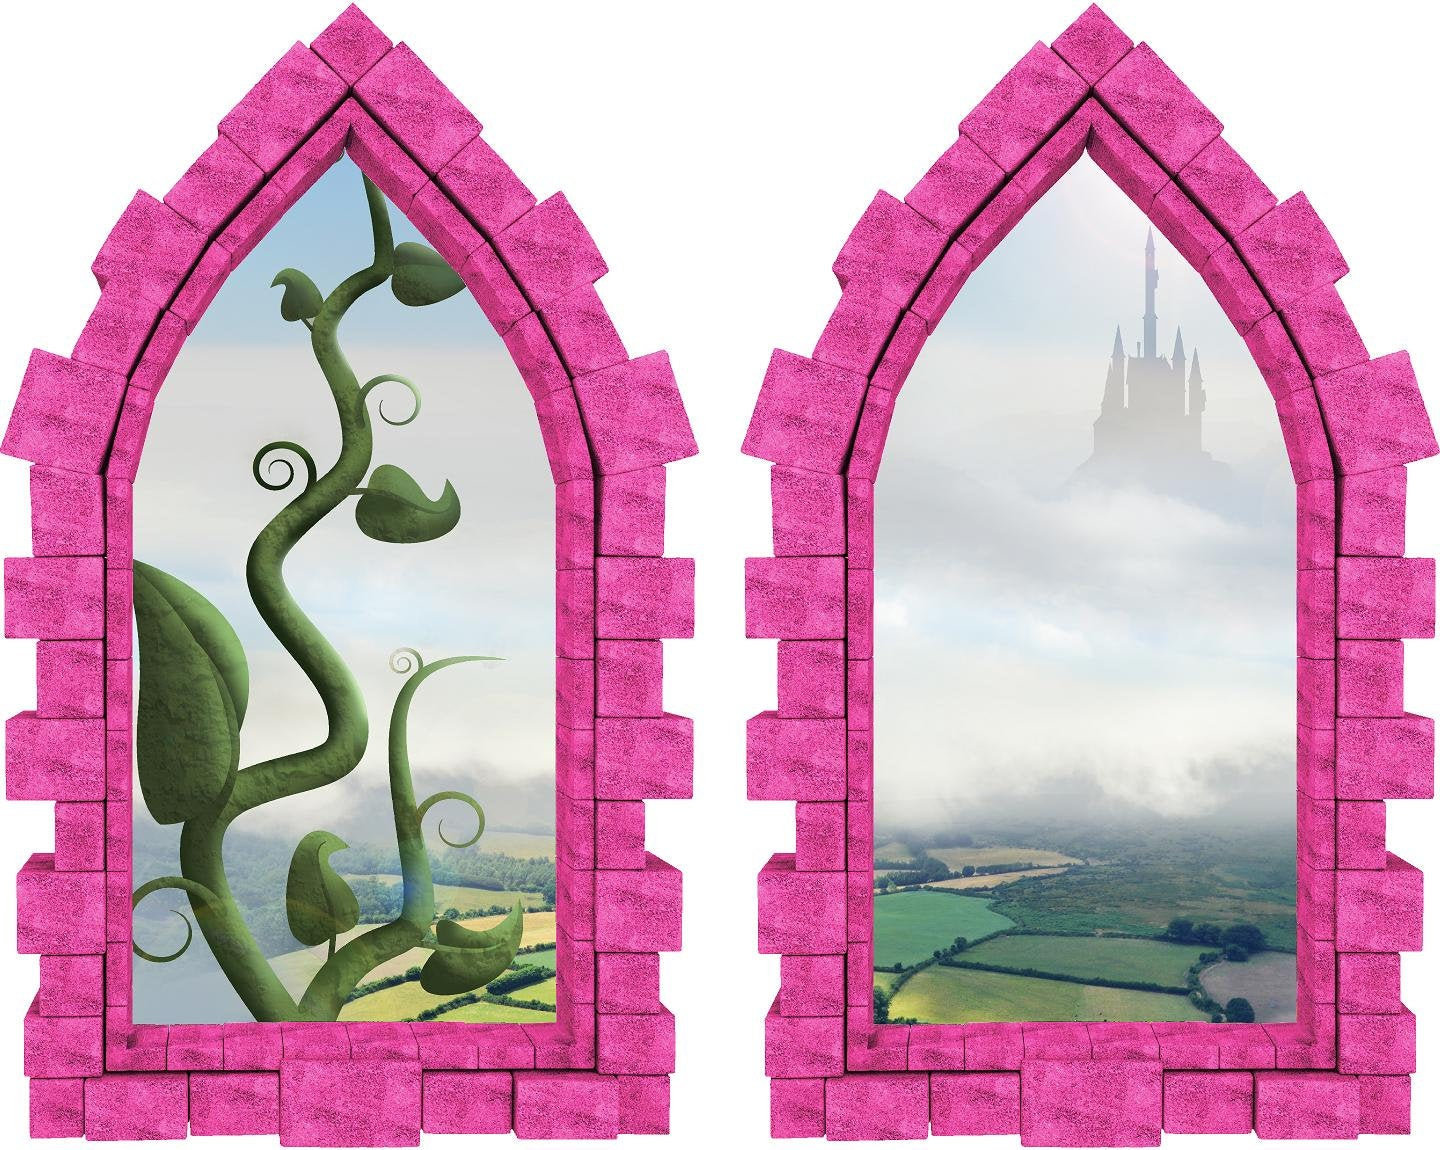 3D Castle Window Jack and the Giant Beanstalk Wall Decal Set of 2 Removable Fabric Vinyl Fantasy Wall Sticker